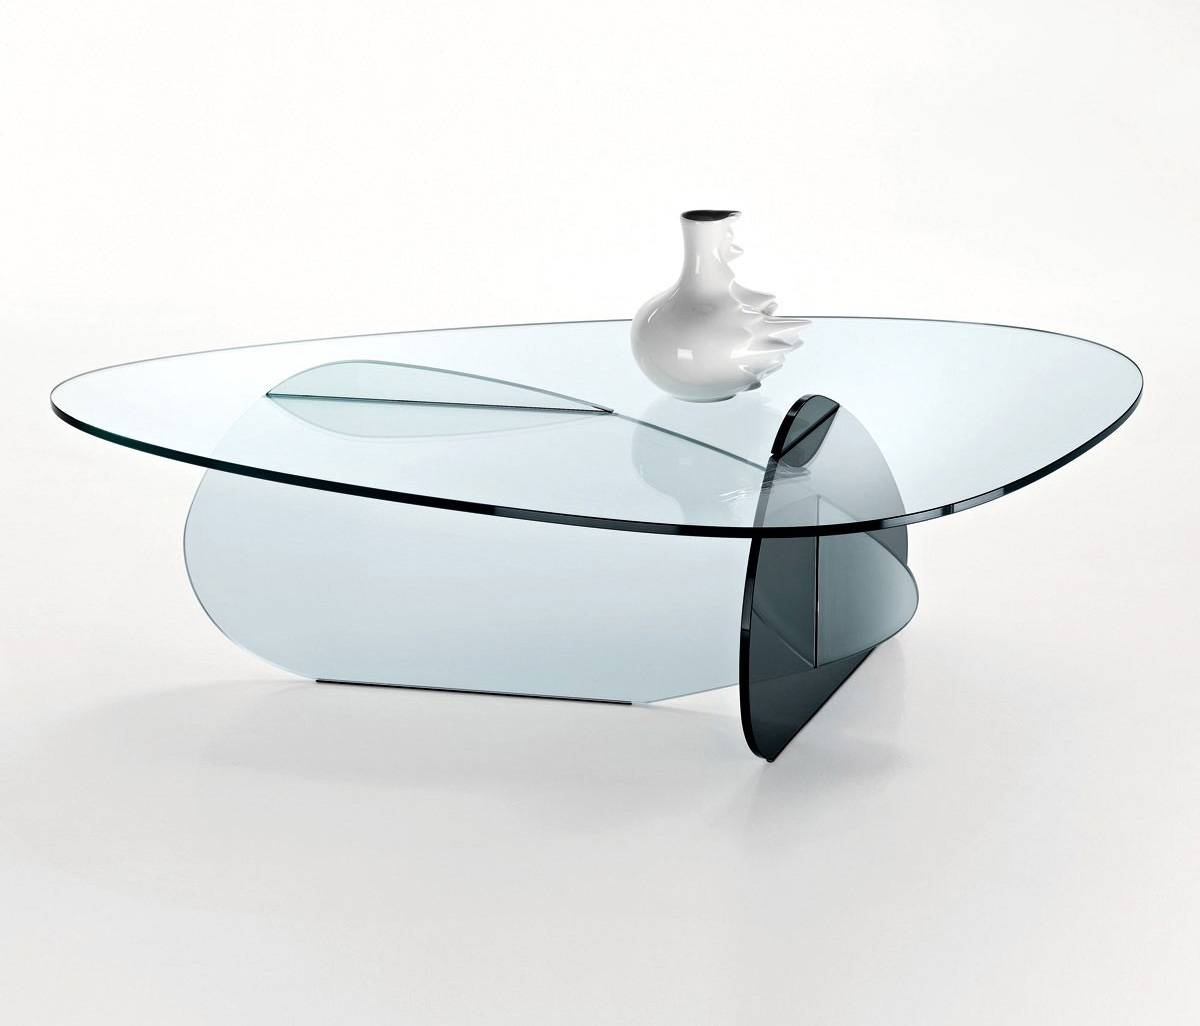 Delighful Round Glass Coffee Tables Table For Sale Inside Design regarding Round Chrome Coffee Tables (Image 9 of 30)